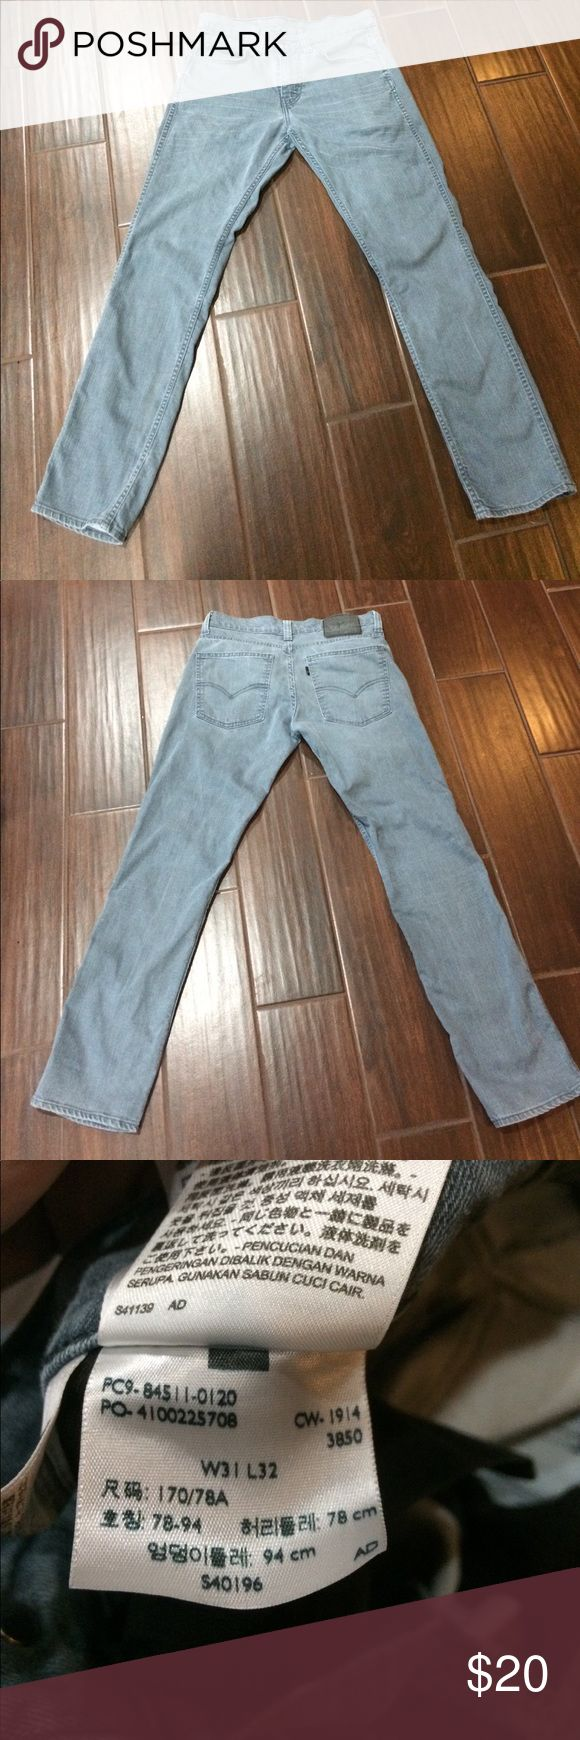 Men's Levi's Jeans 511 Size 31x32 EUC Men's Levi's Jeans 511 Size 31x32                       Light blue color                                                               No Rips, holes, stains, or distressing.                     Perfect overall condition                                         * Smoke & Pet Free Home Levi's Jeans